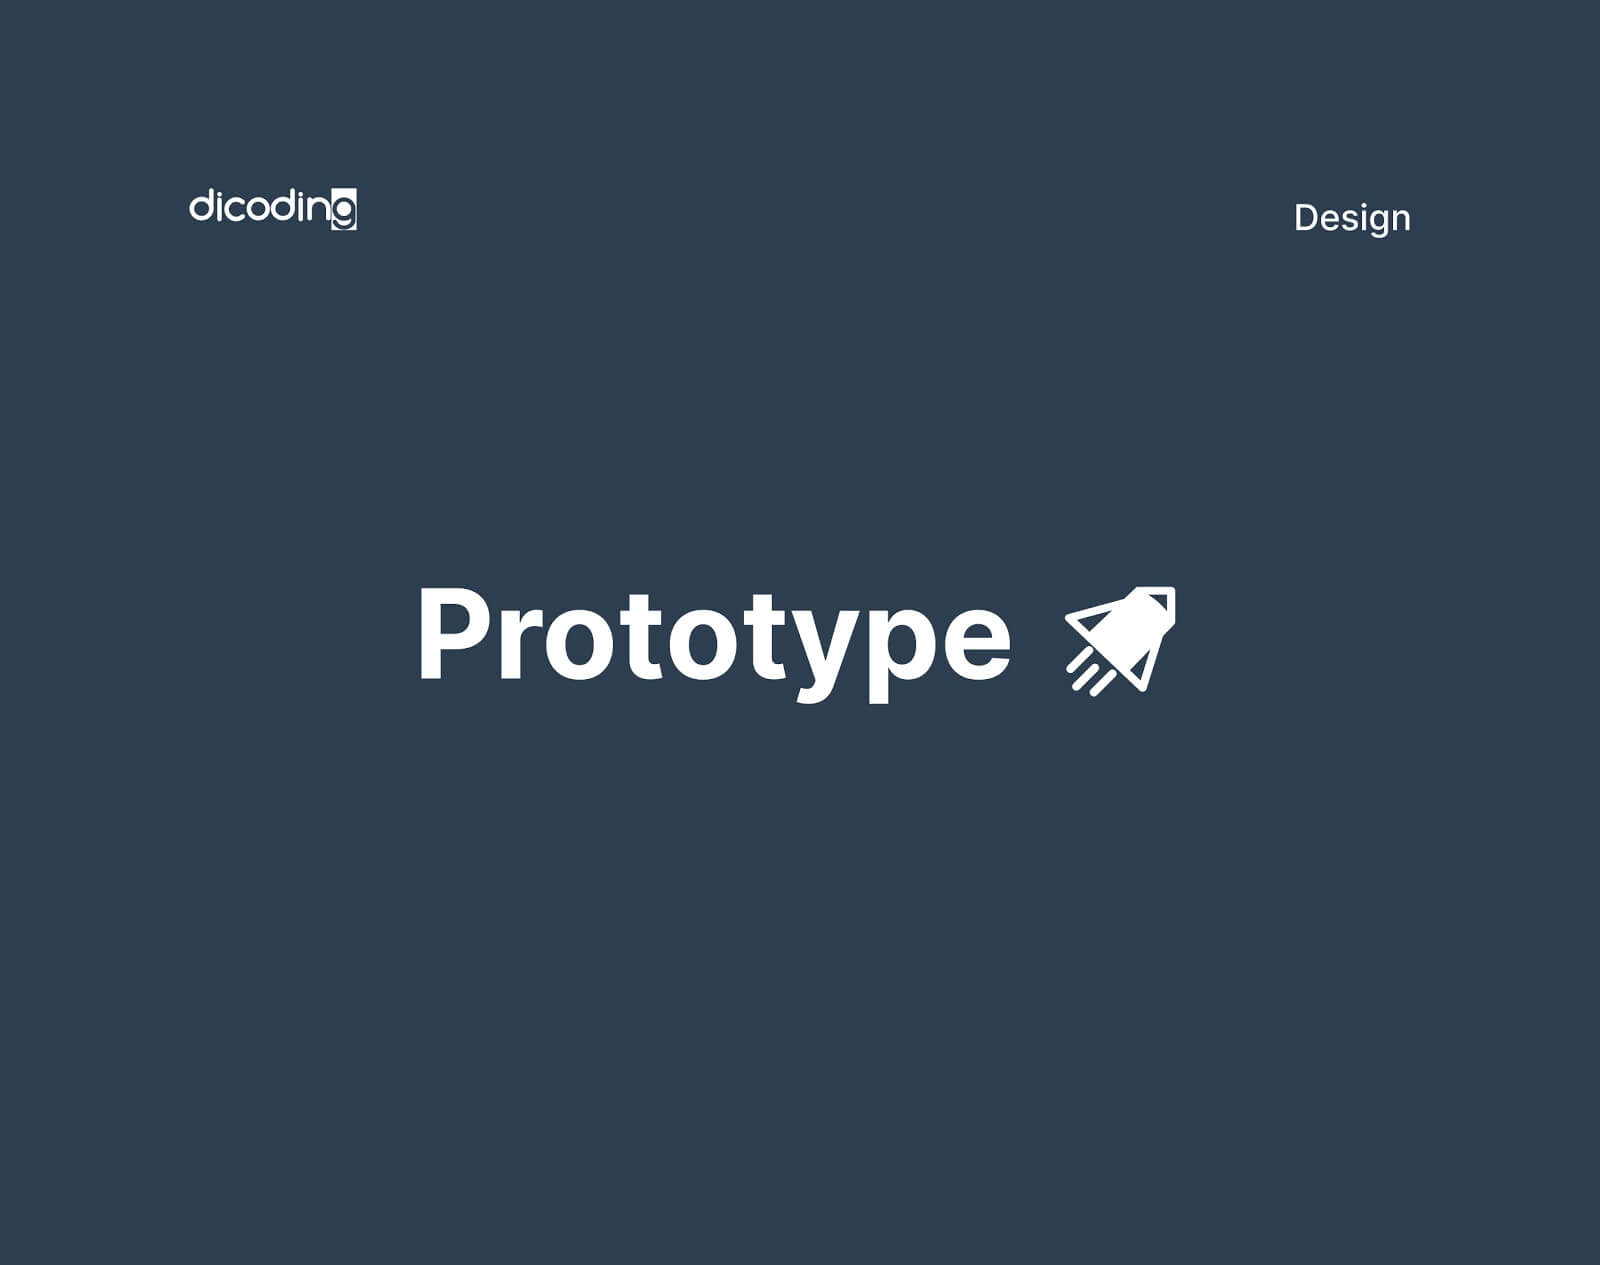 Design Process - Prototype